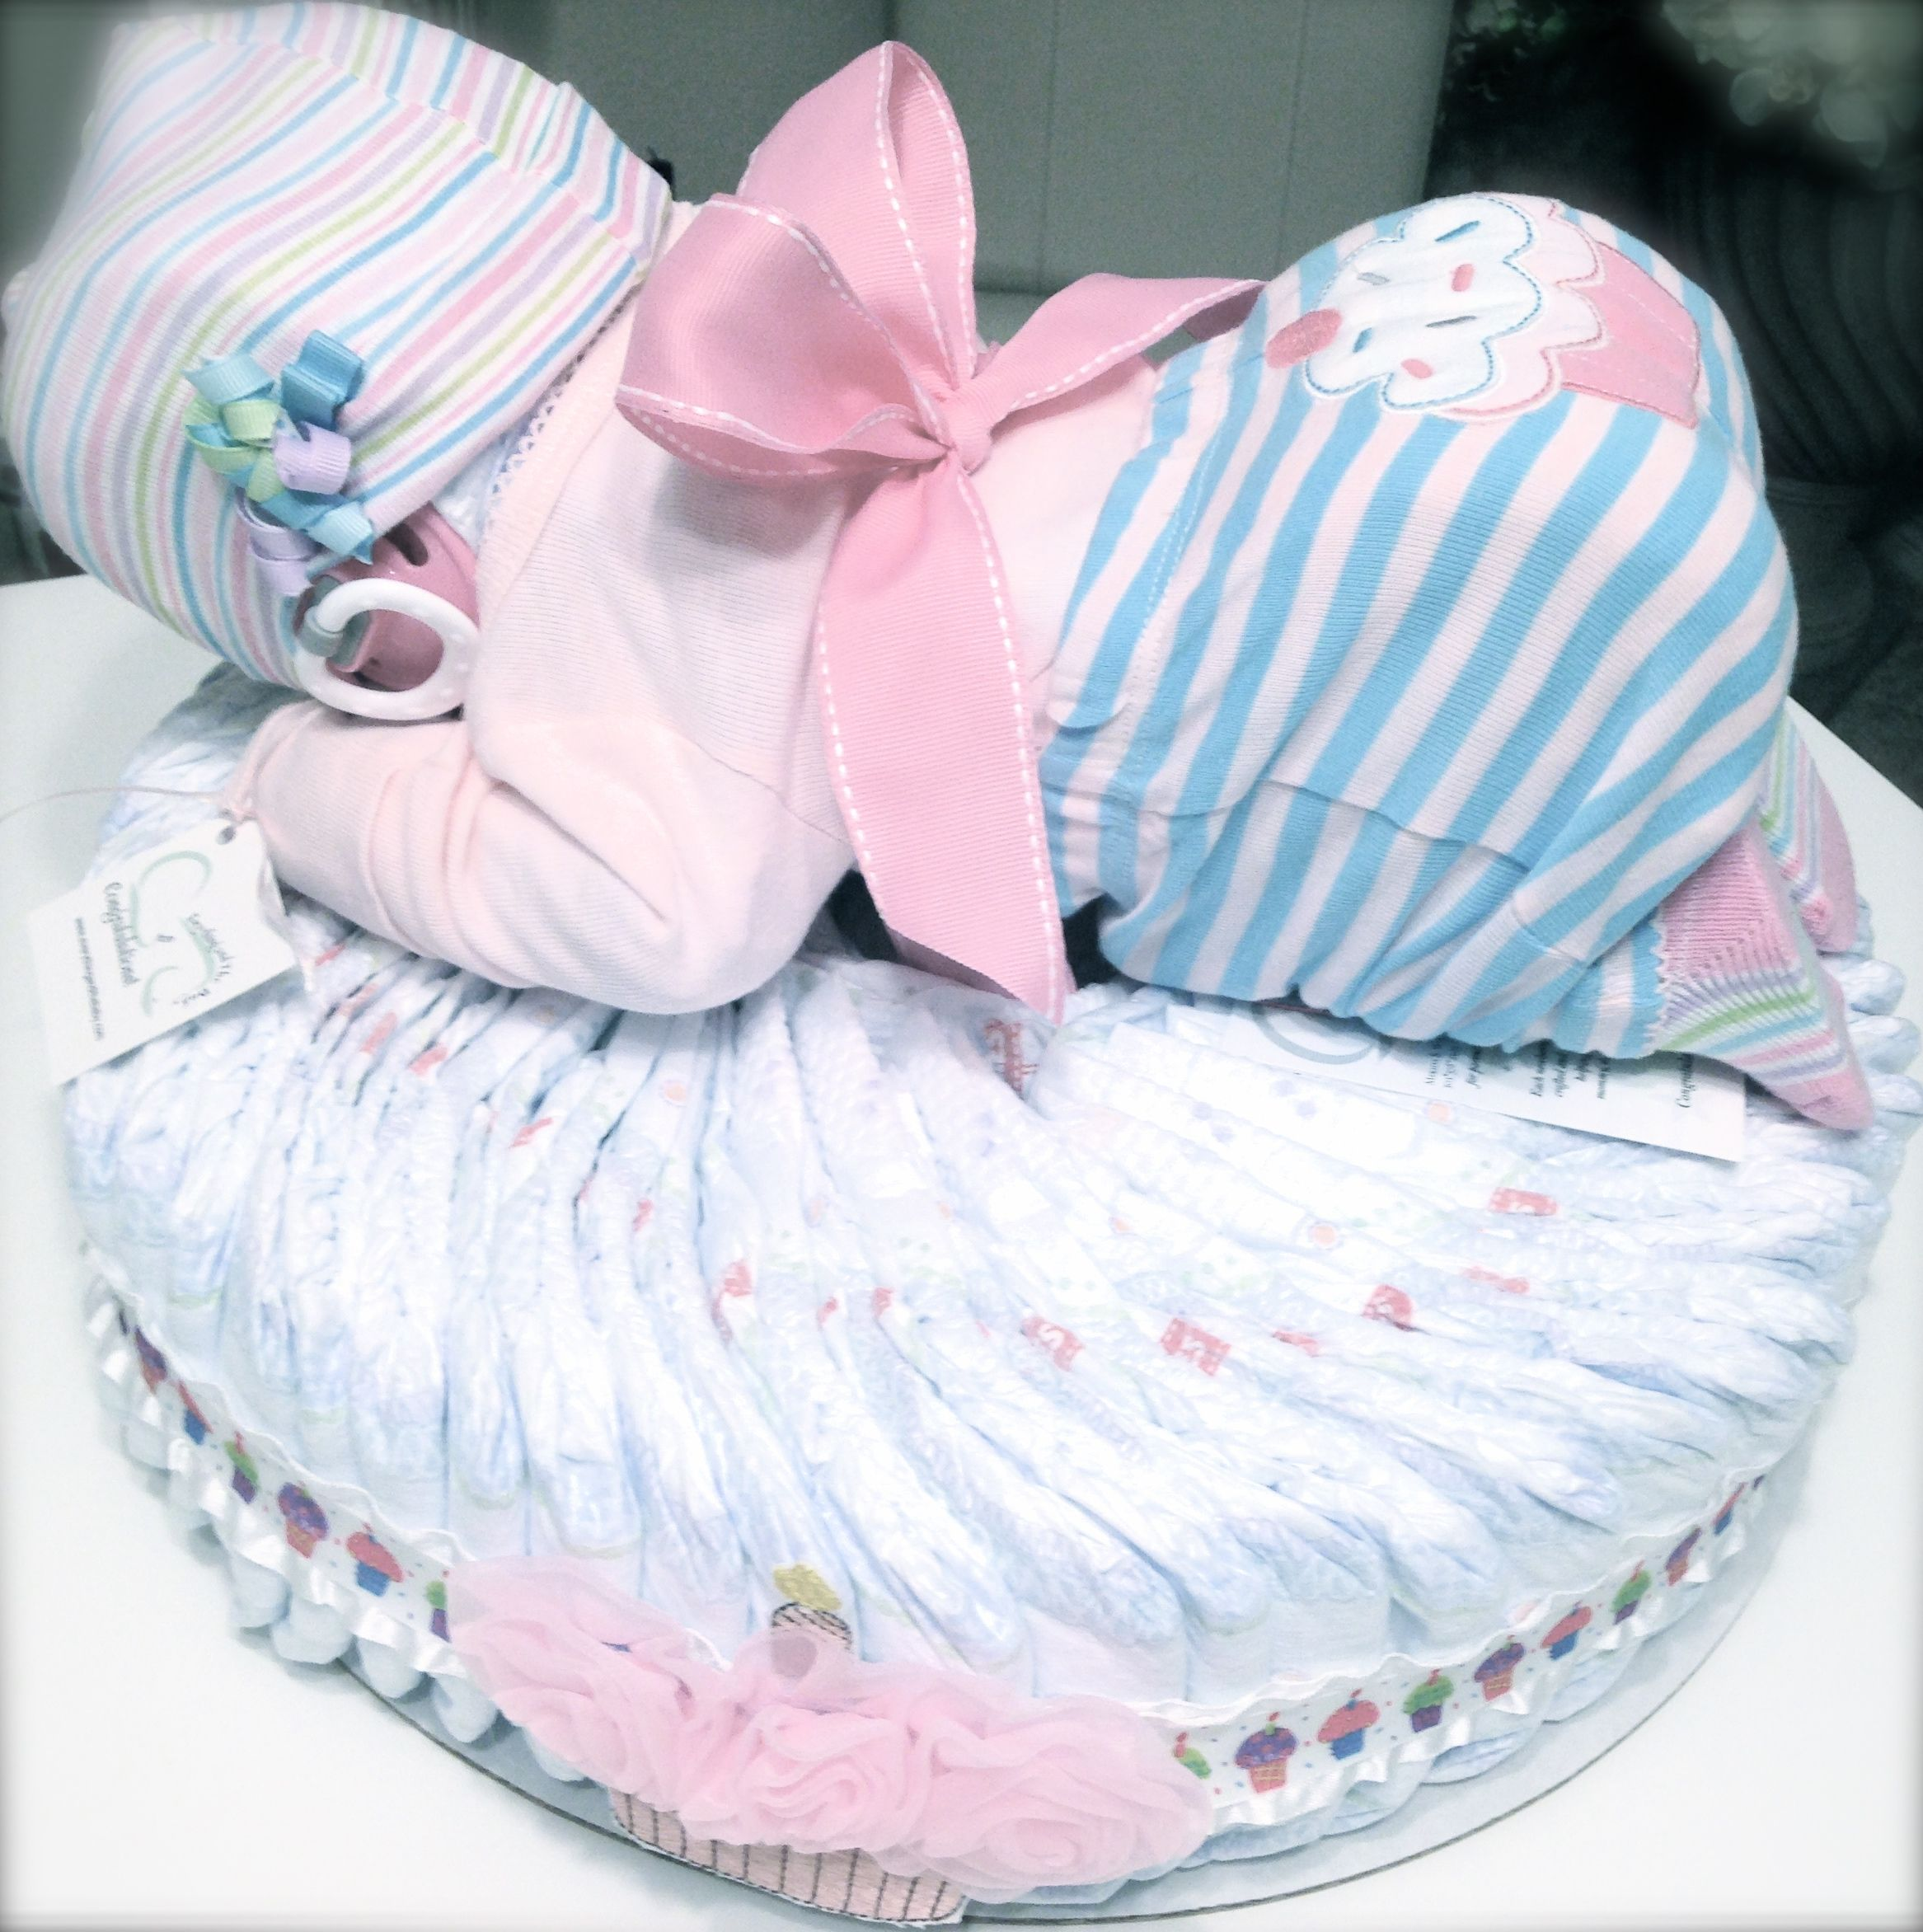 Lovely Diaper Baby Cake Perfect For A Baby Shower Gift, A Baby Shower Centerpiece,  A Hospital Gift Or Nursery Decor. Want To Customize Or Personalize Your  Order?